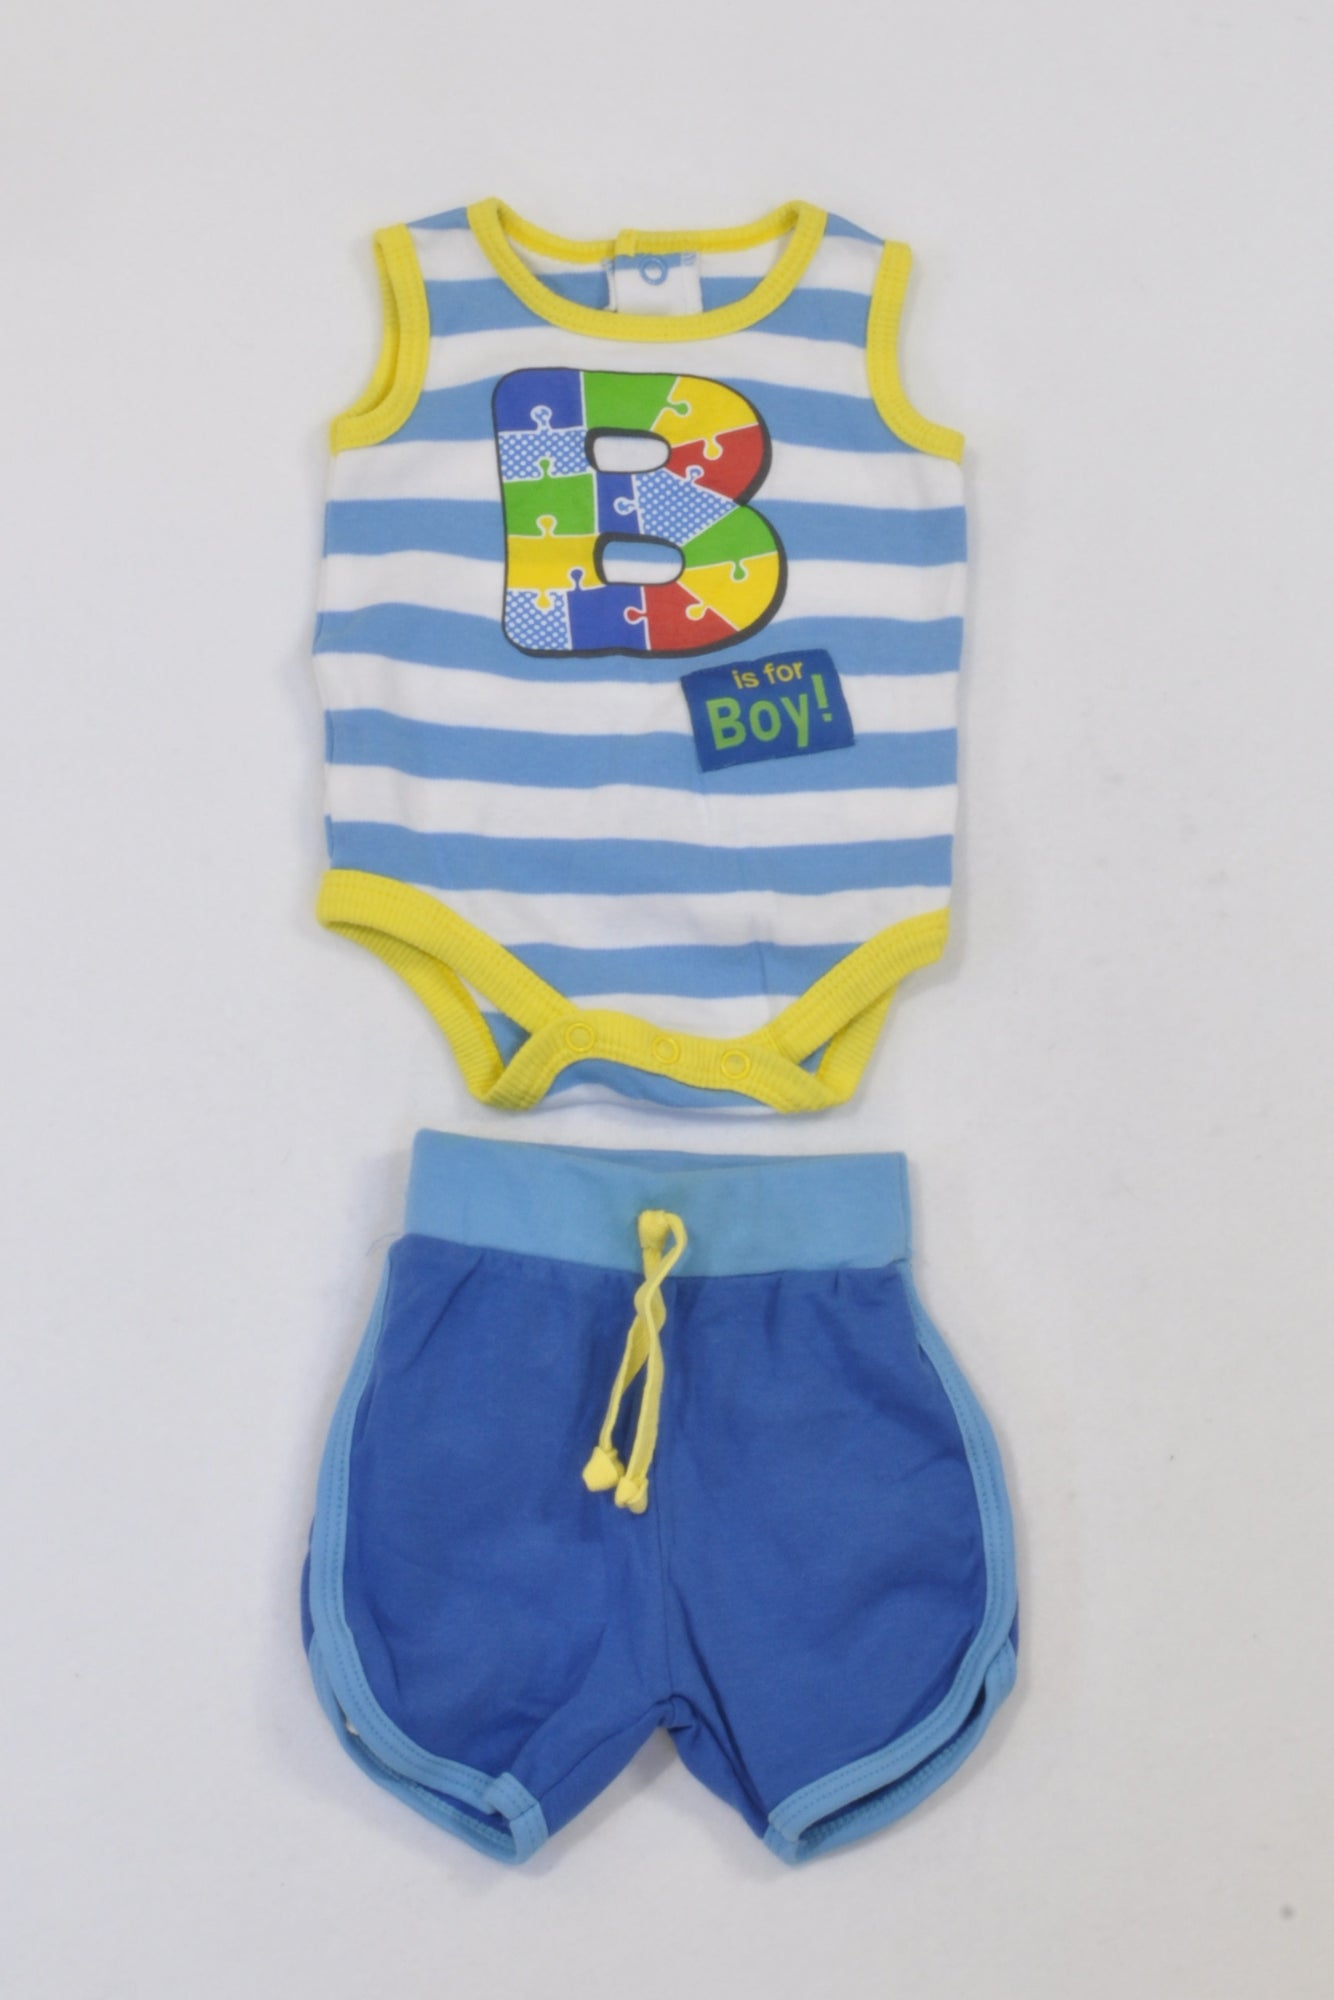 Woolies Blue & Yellow Trim Baby Grow & Shorts (1 of 2) Outfit Boys 0-3 months